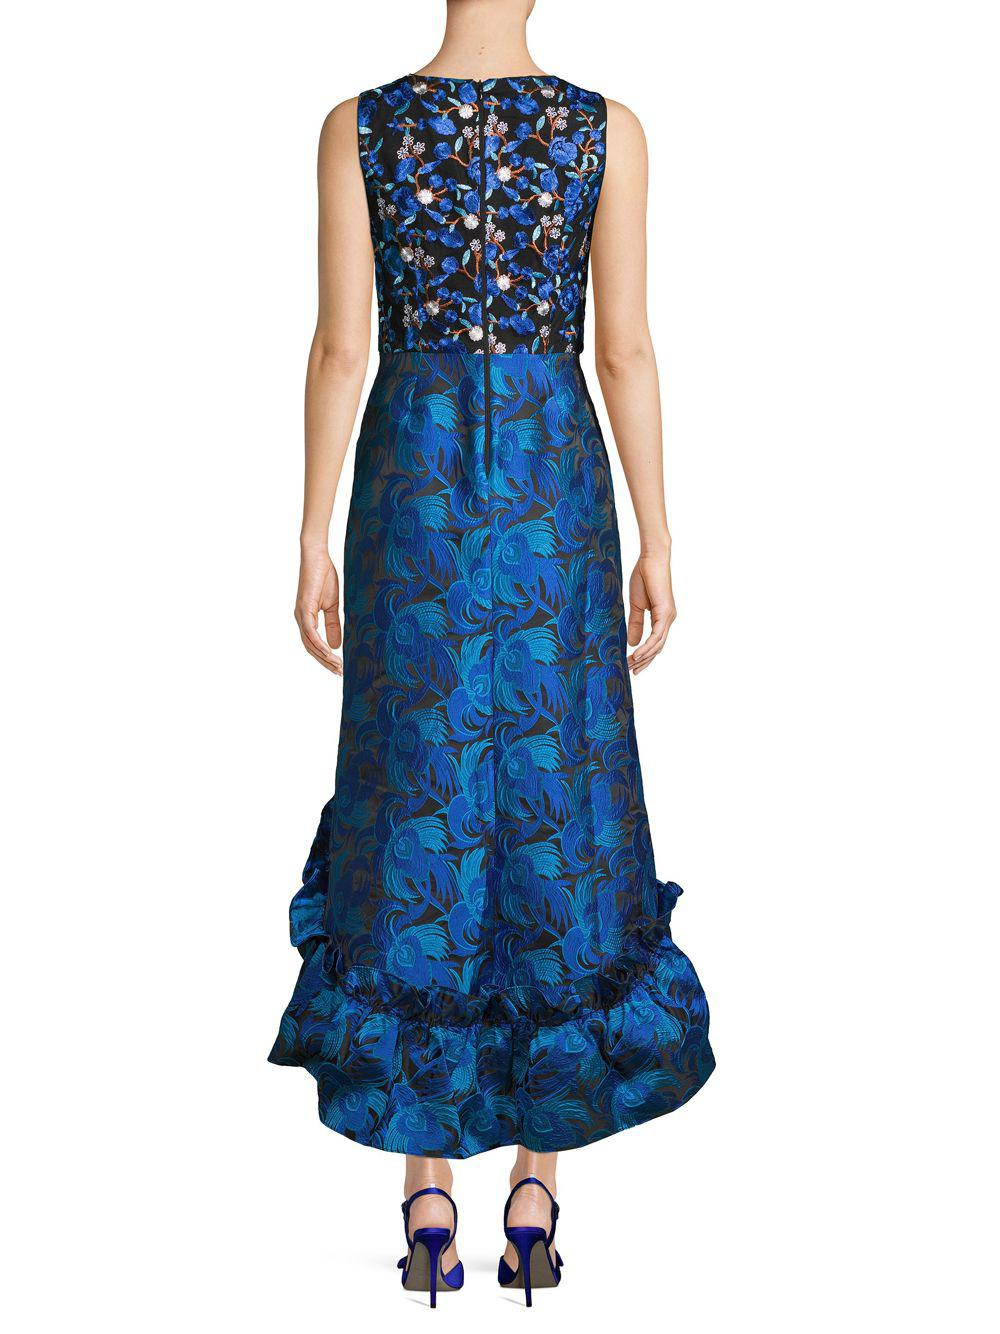 cb6a336fbe4 Belle By Badgley Mischka - Blue Sandrine Embroidered Floral High-low Sheath  Dress - Lyst. View fullscreen